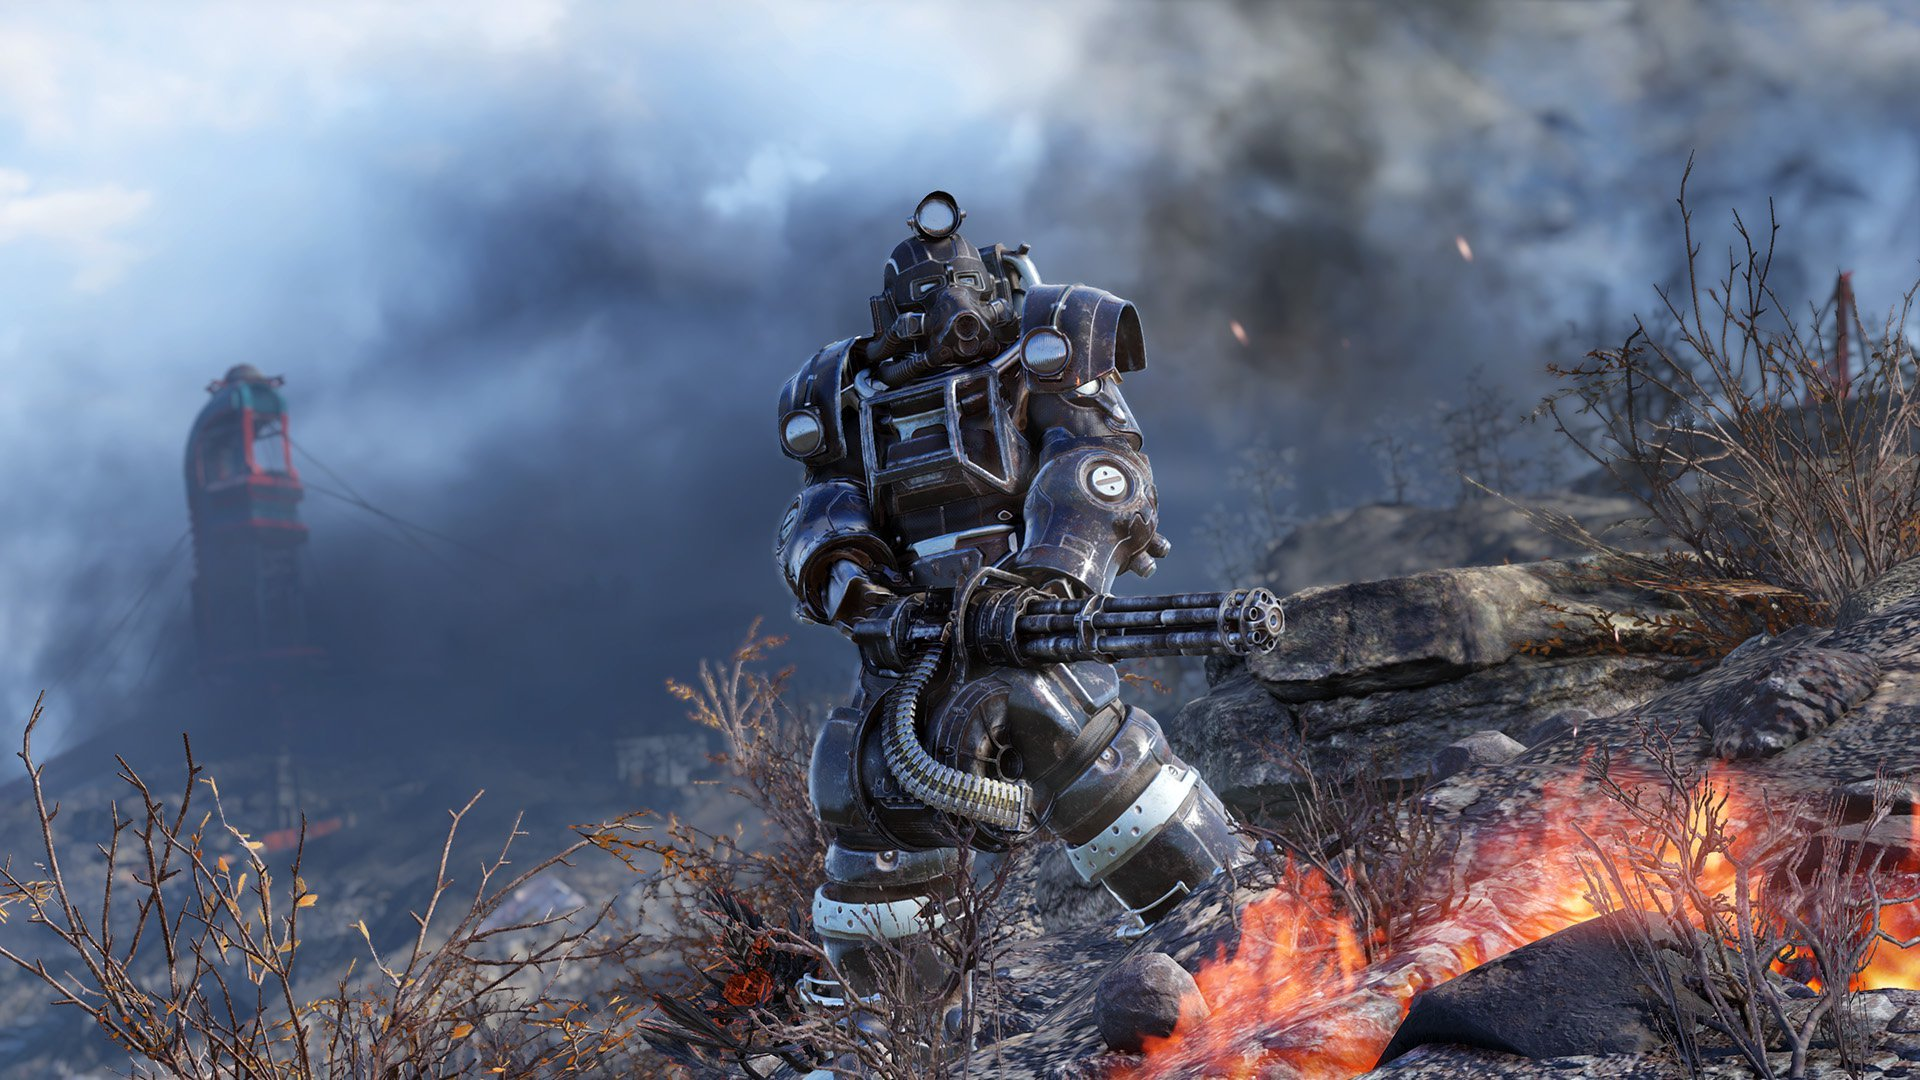 Fallout 76 update 1.2.1.18 patch notes out now